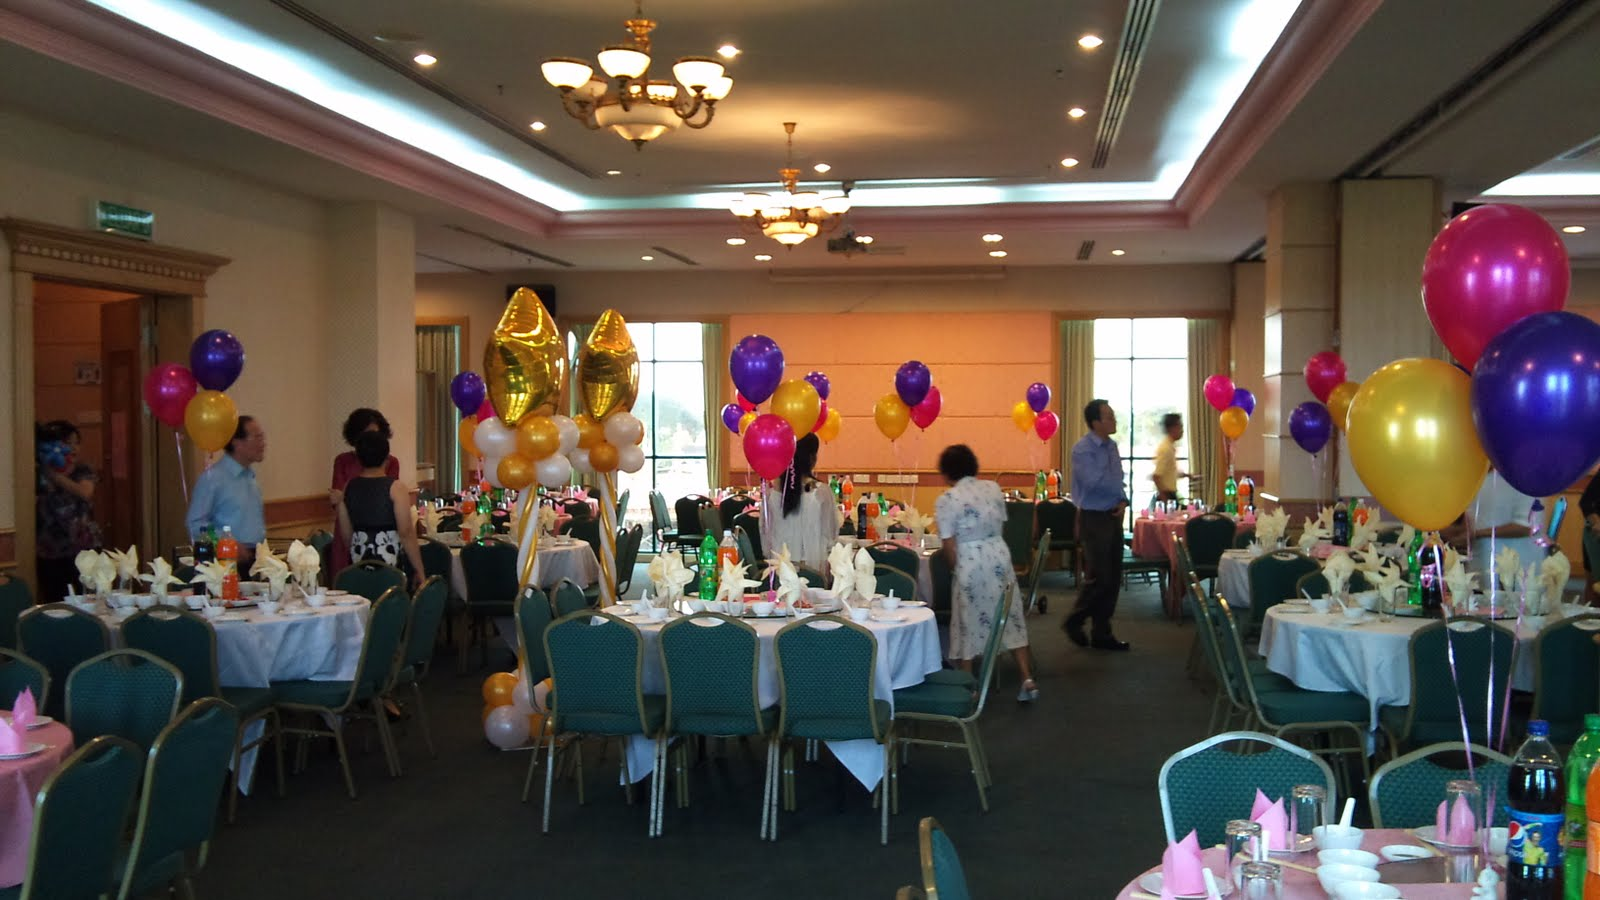 Party Decorations For 80th Birthday Party Image Inspiration of